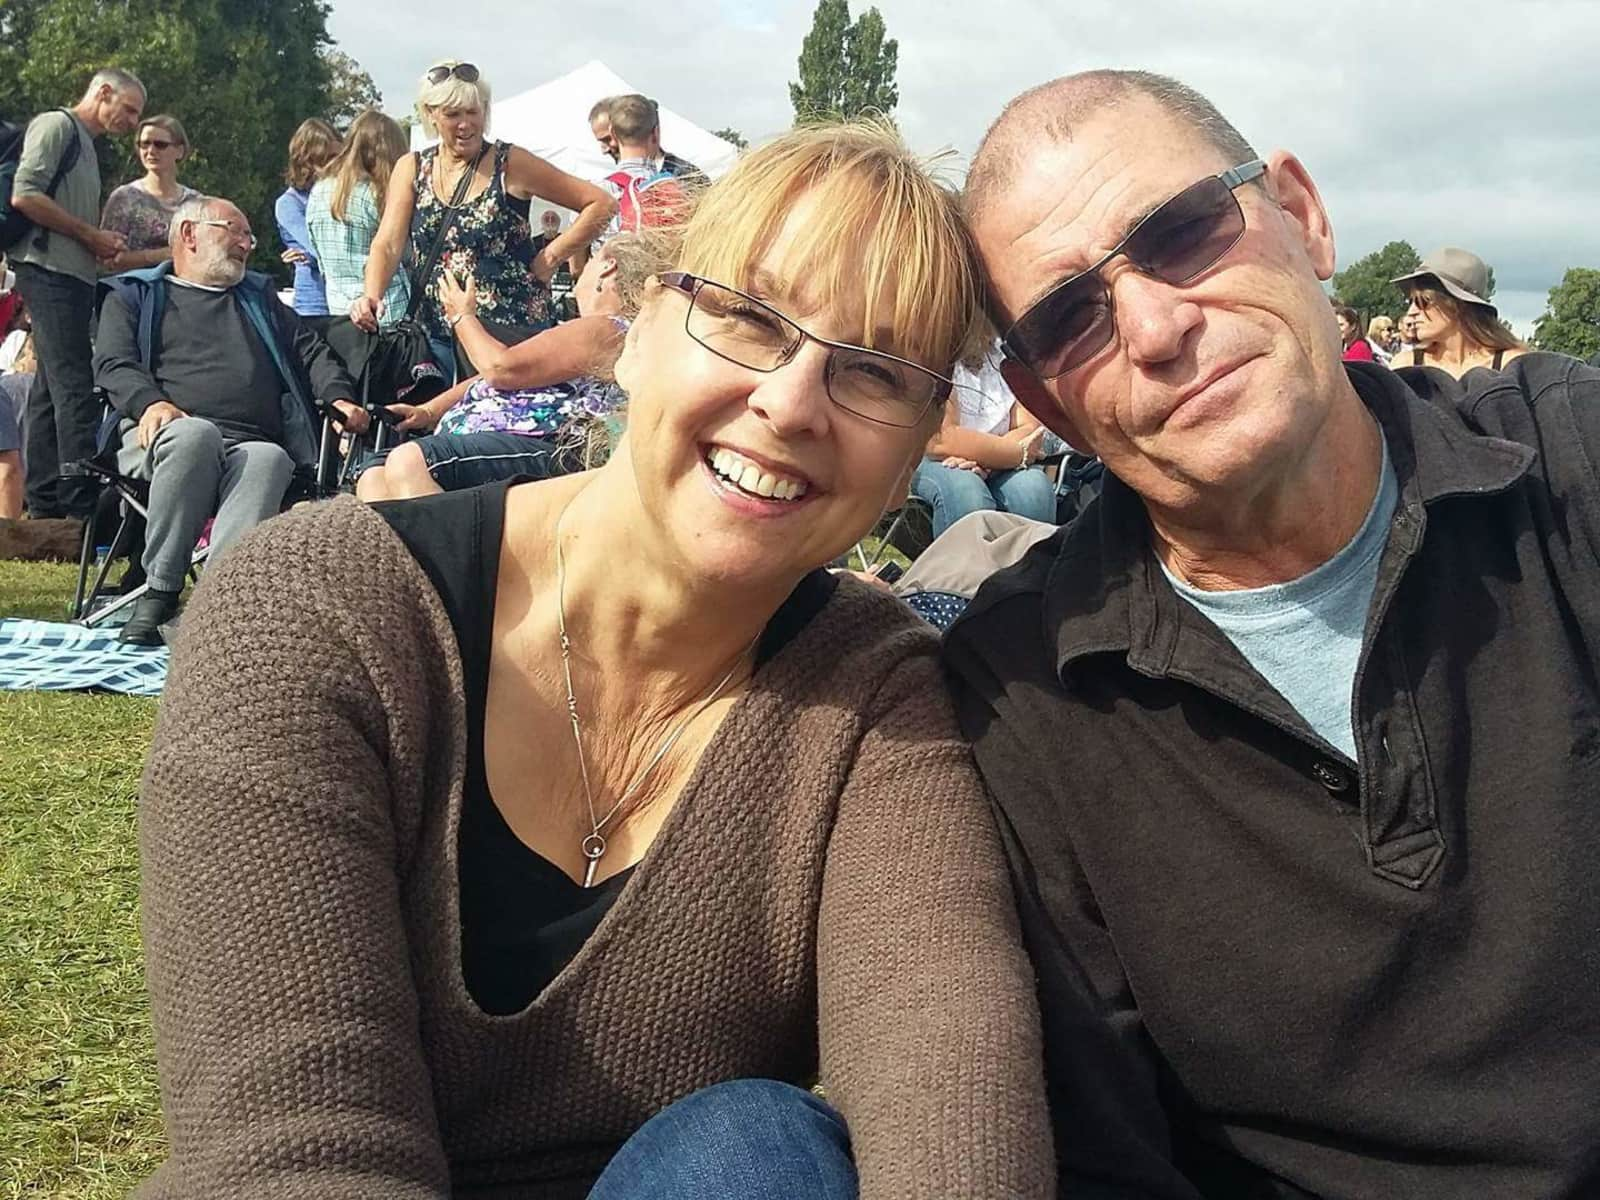 Carol & Mark from Oxford, United Kingdom